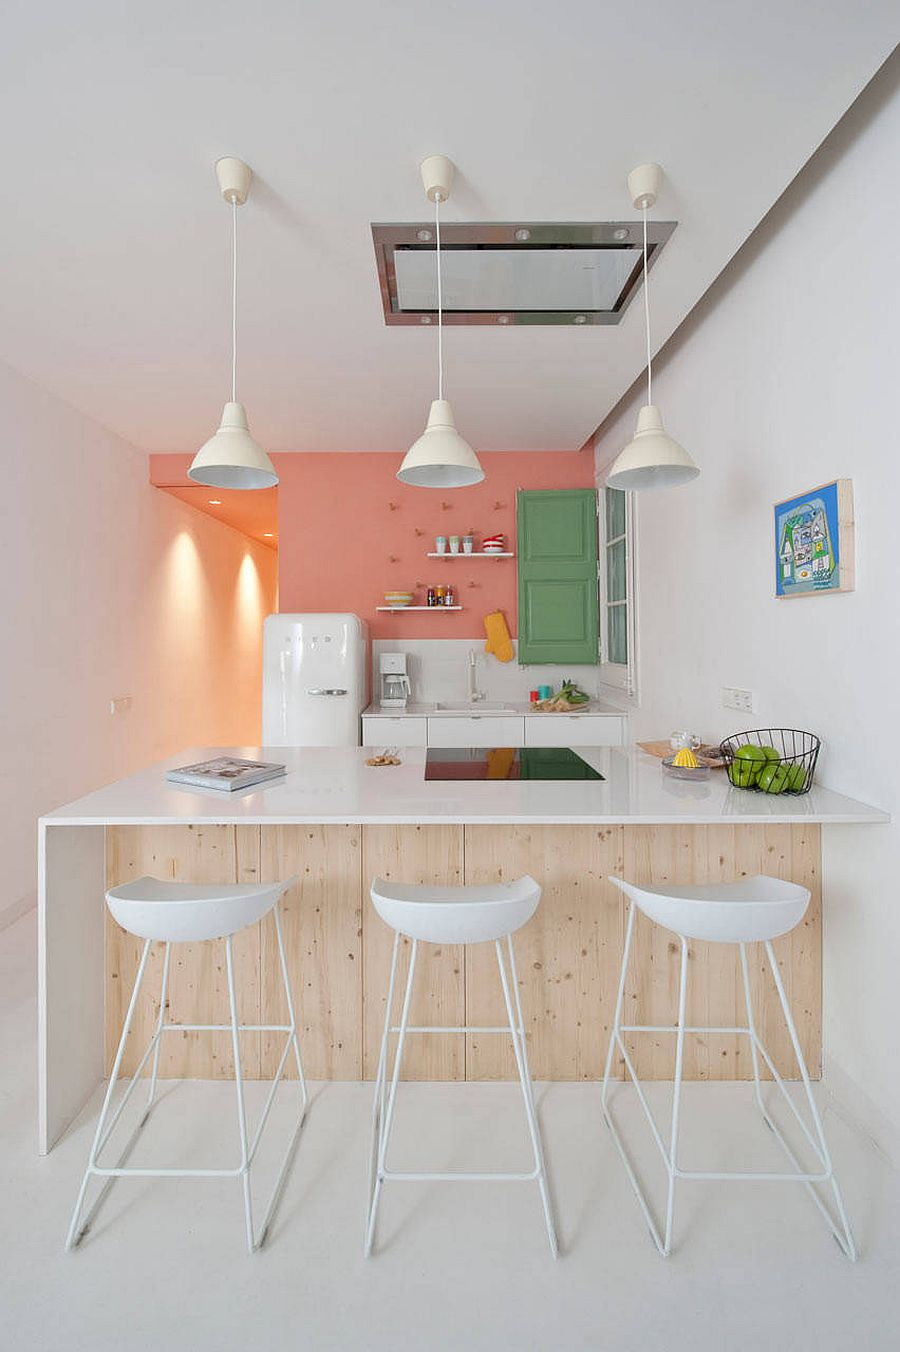 Pastel-pink-and-green-bring-color-to-the-classy-vintage-kitchen-15348